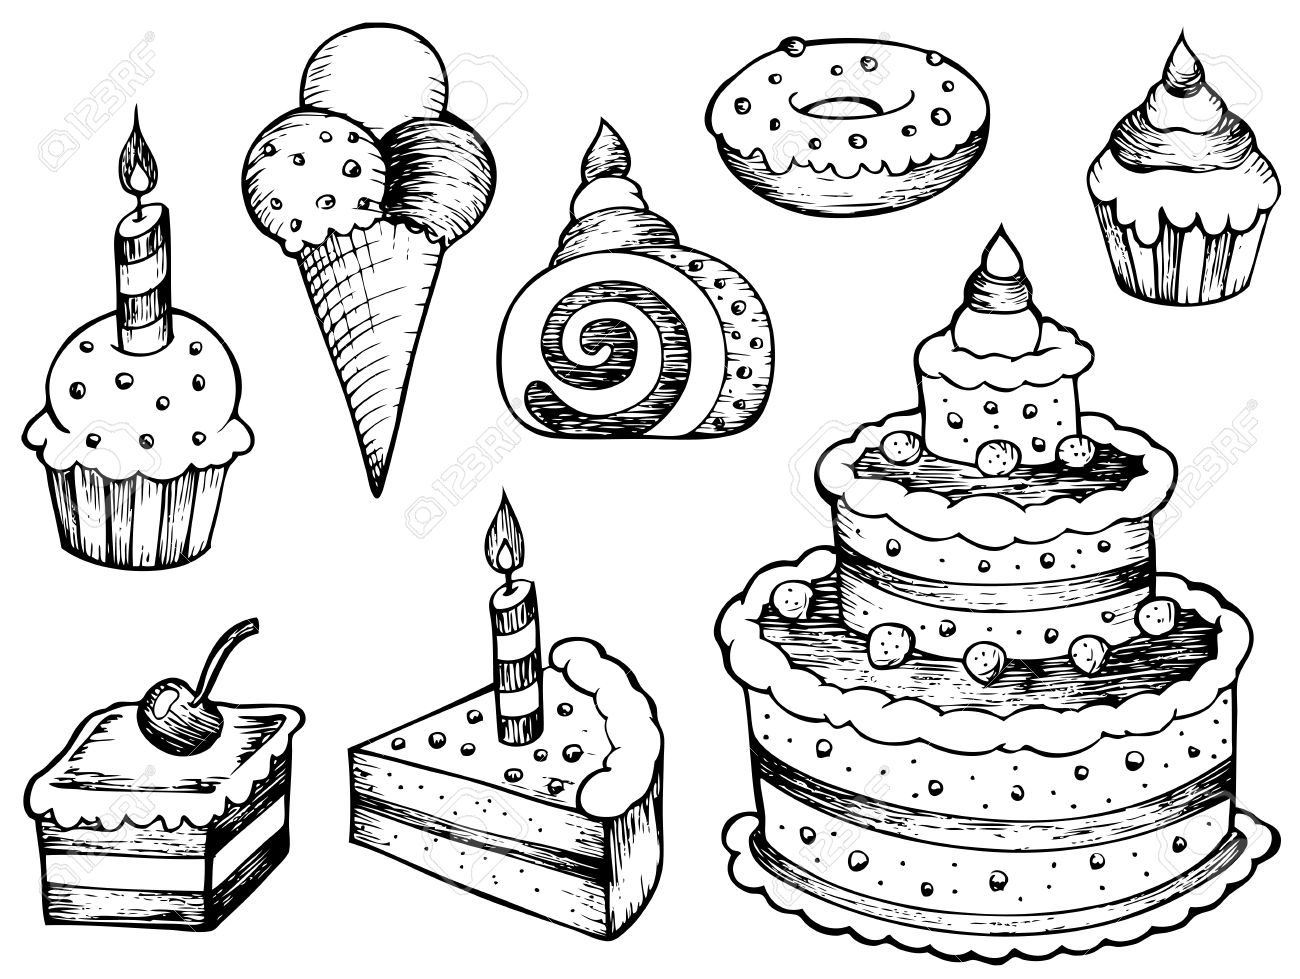 cake drawing sketch of cake at paintingvalleycom explore collection drawing cake